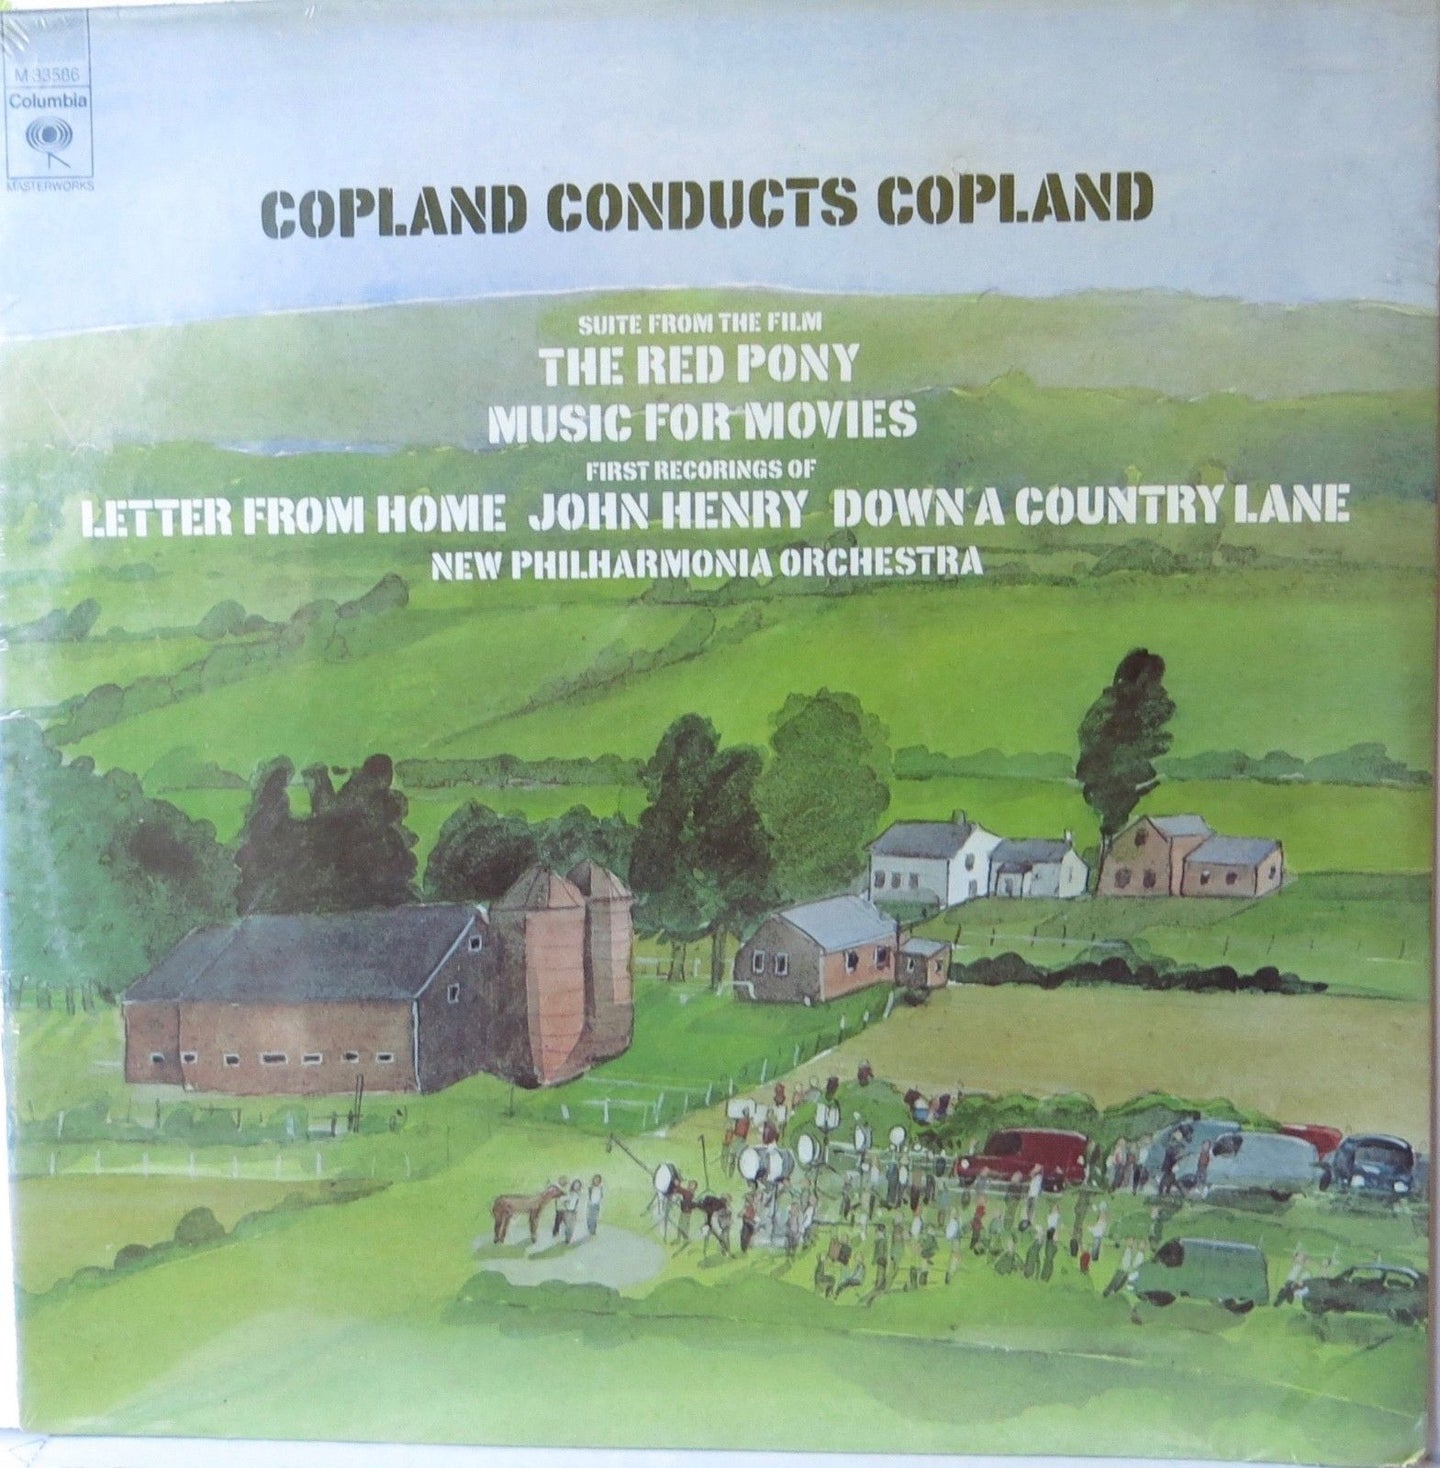 Copland Conducts Copland - Columbia